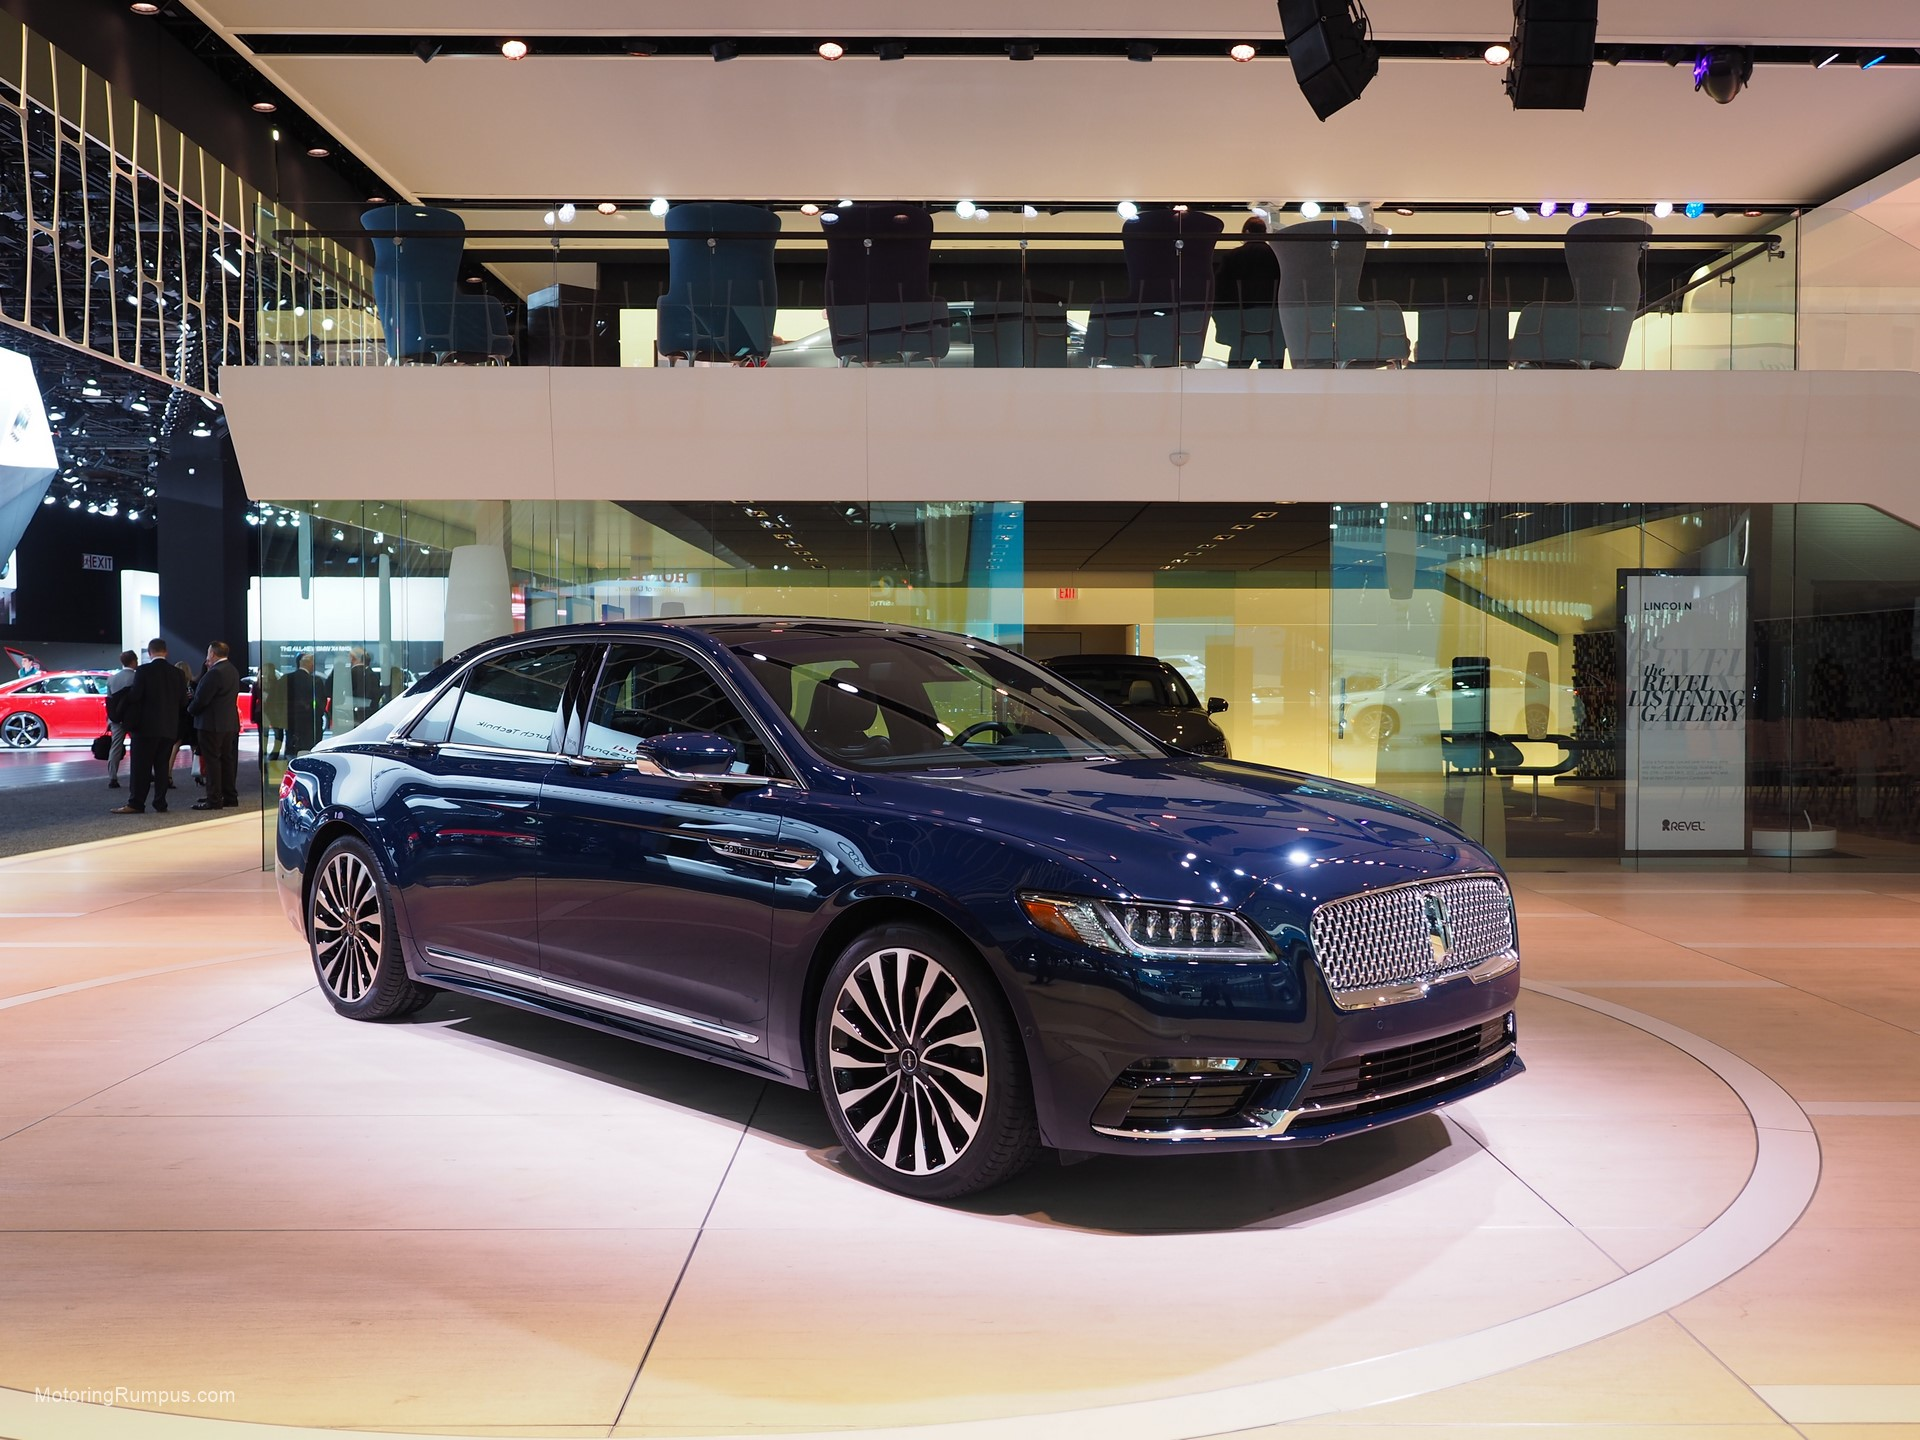 2016 NAIAS 2017 Lincoln Continental Black Label